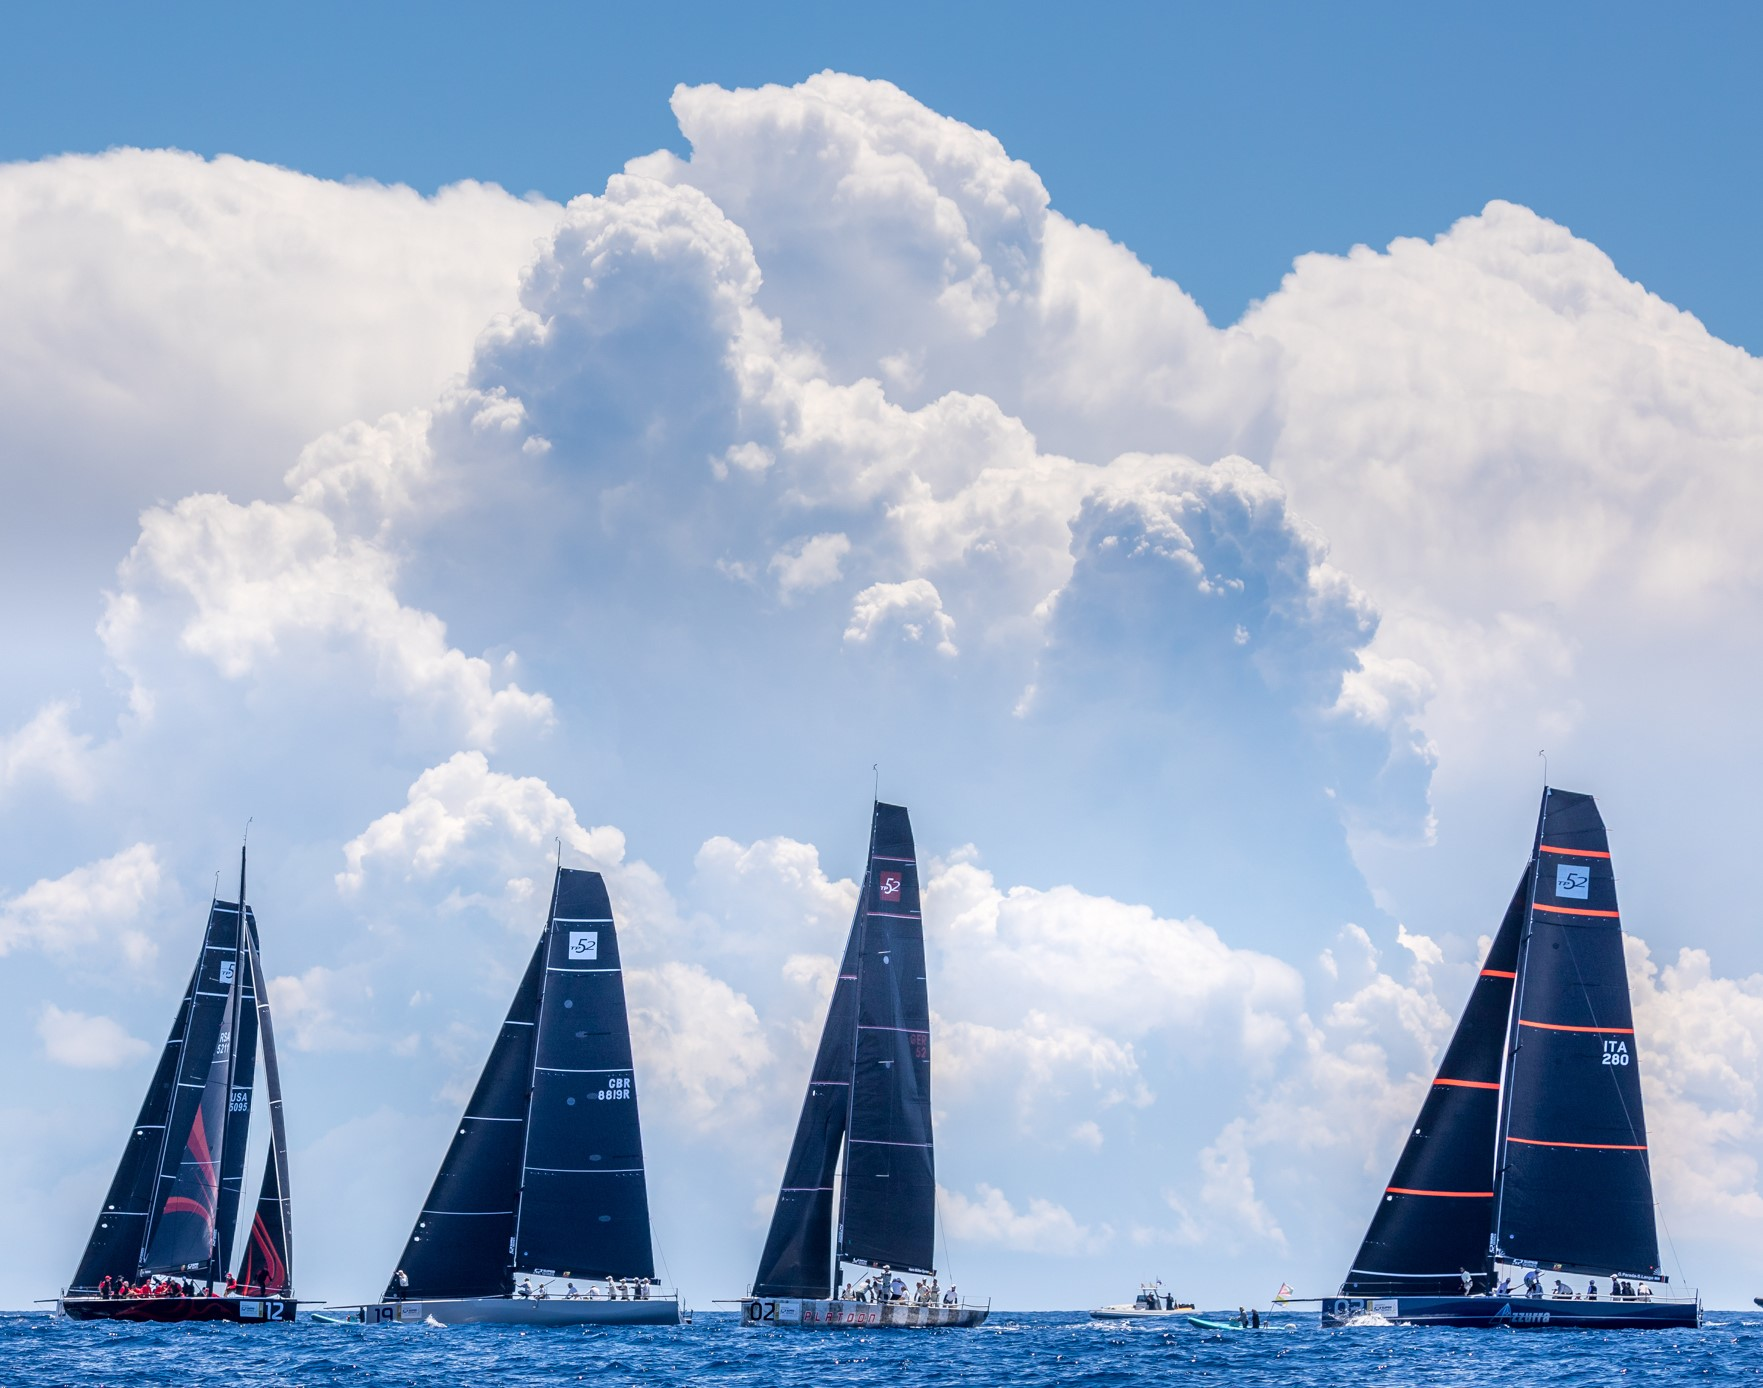 I SOCI YCCS ALLA MENORCA 52 SUPER SERIES SAILING WEEK - NEWS - Yacht Club Costa Smeralda